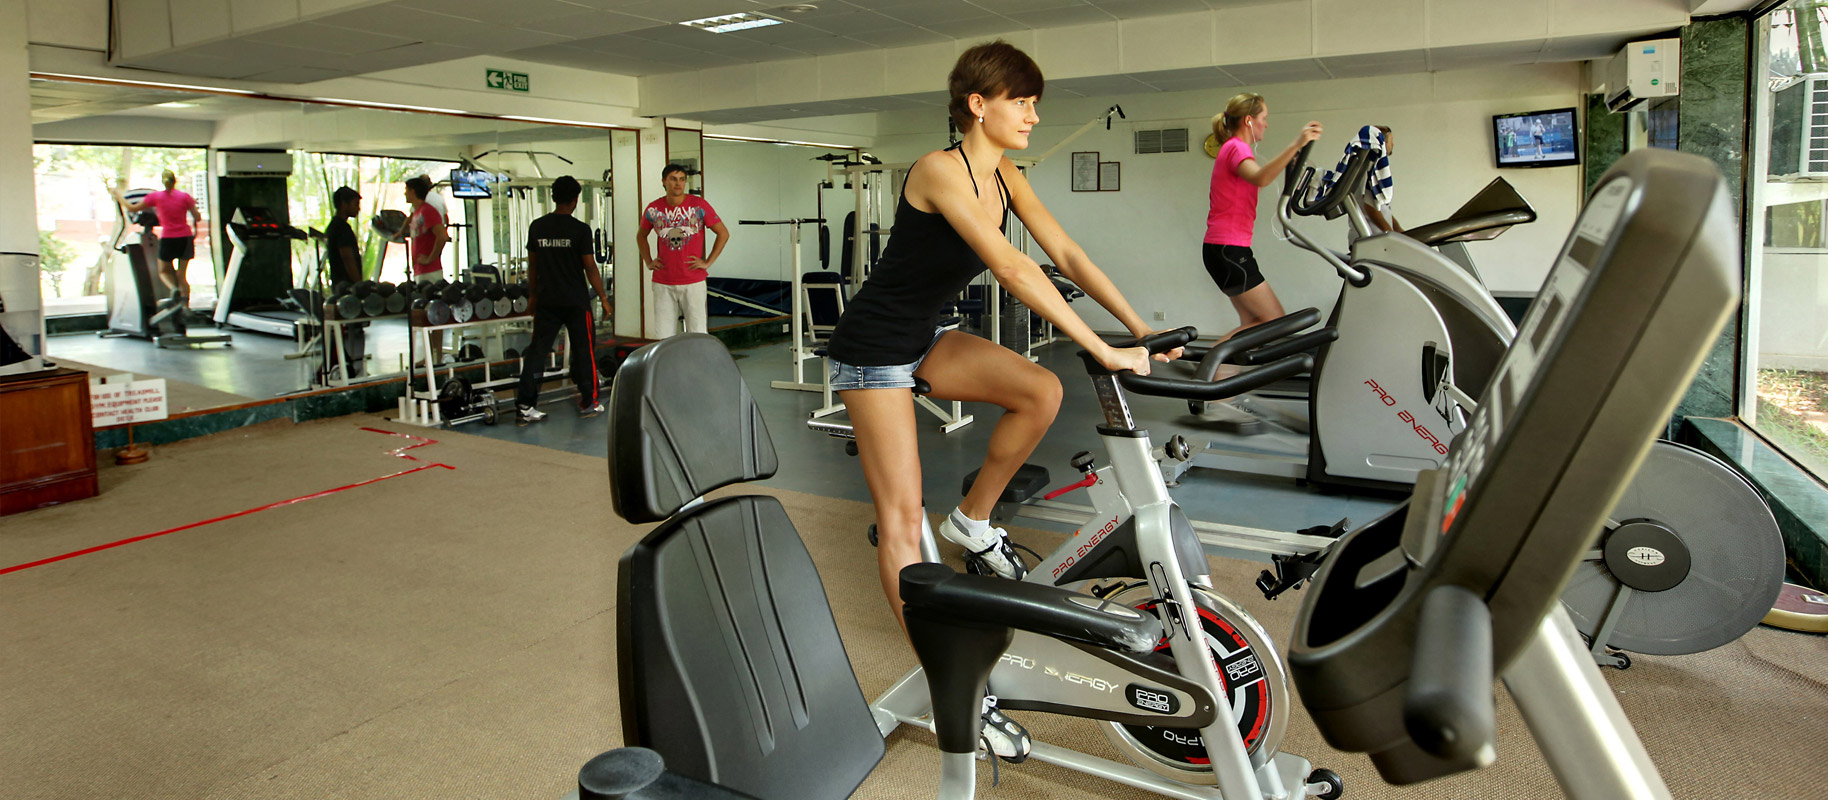 Bogmallo_Resort_Fitness_Center